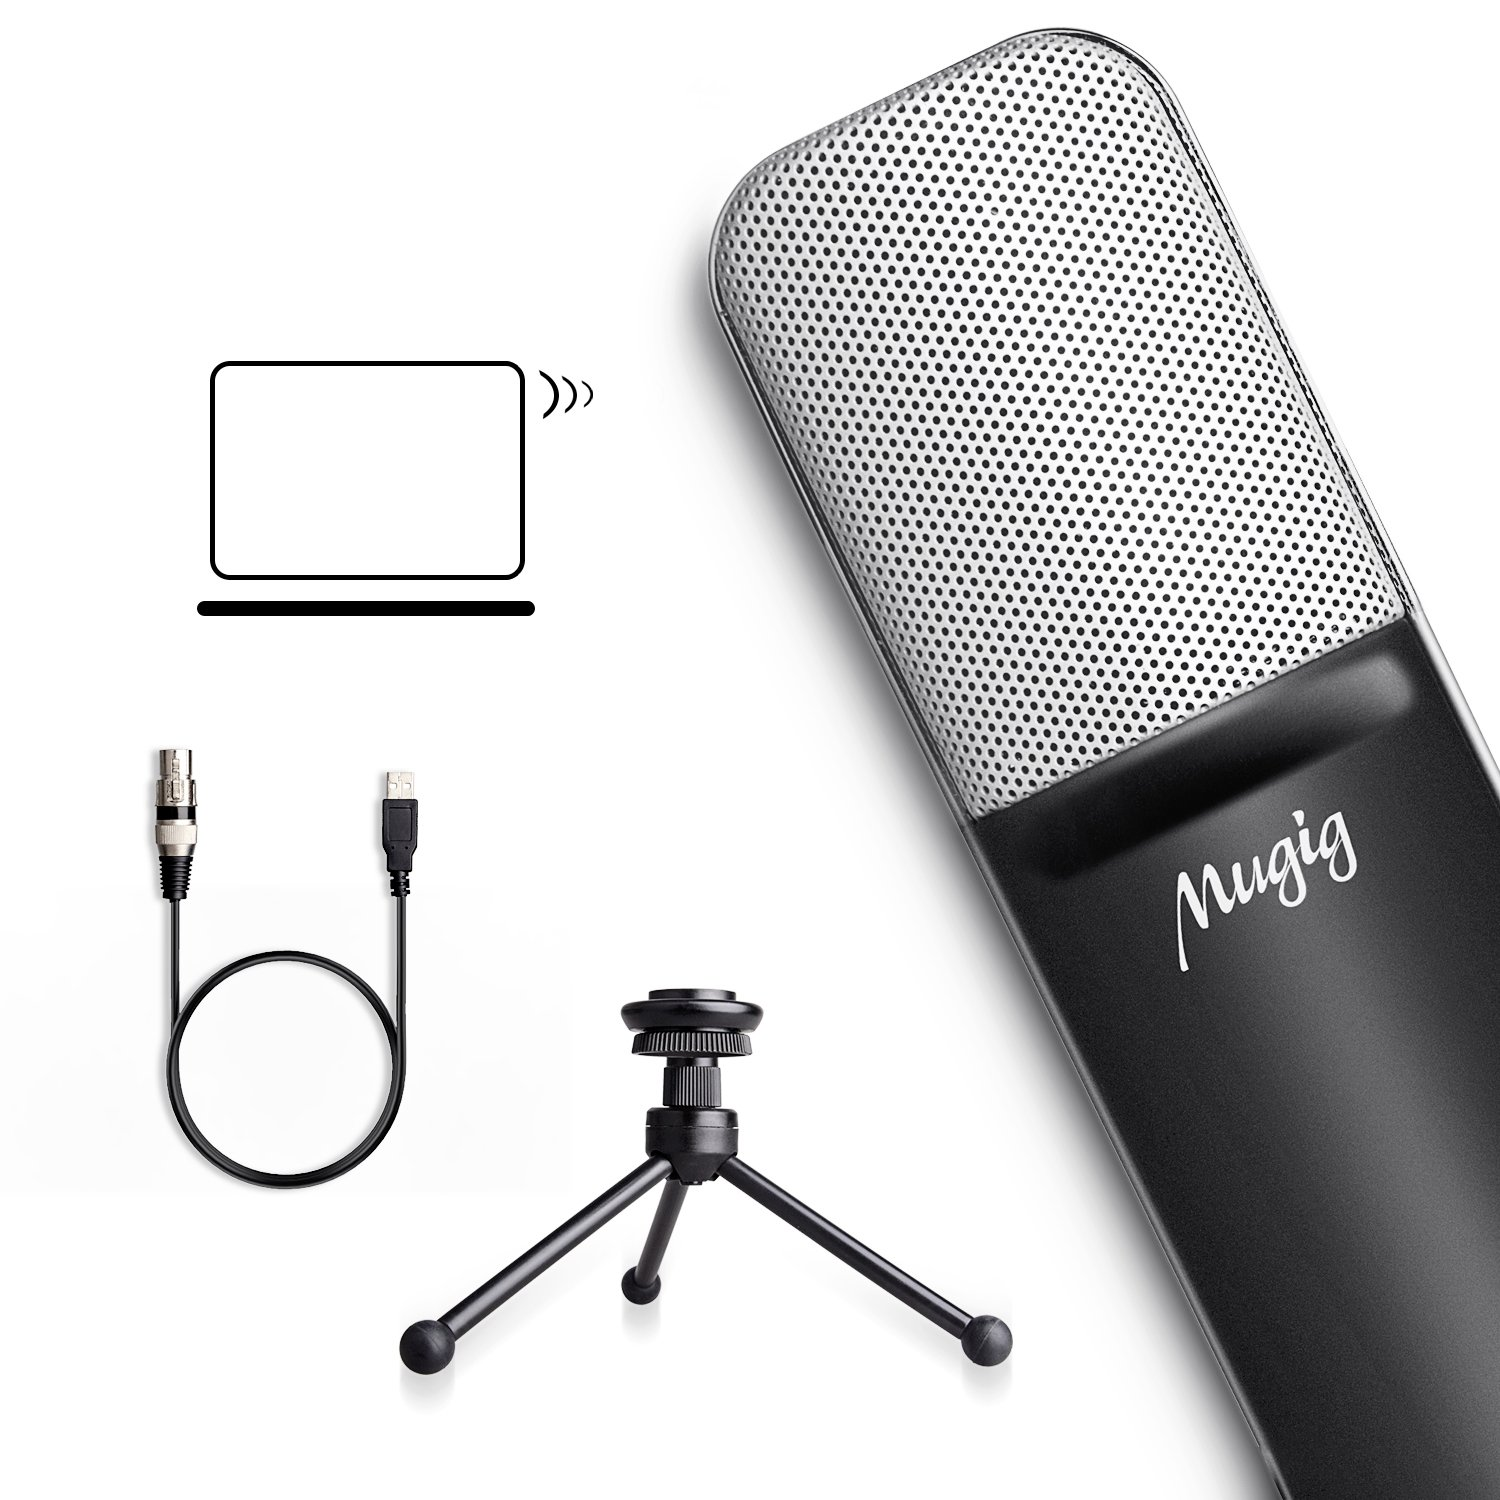 Mugig Condenser USB Microphone for PC Laptop Computer with Tripod Stand Portable Wired Recording USB Mic